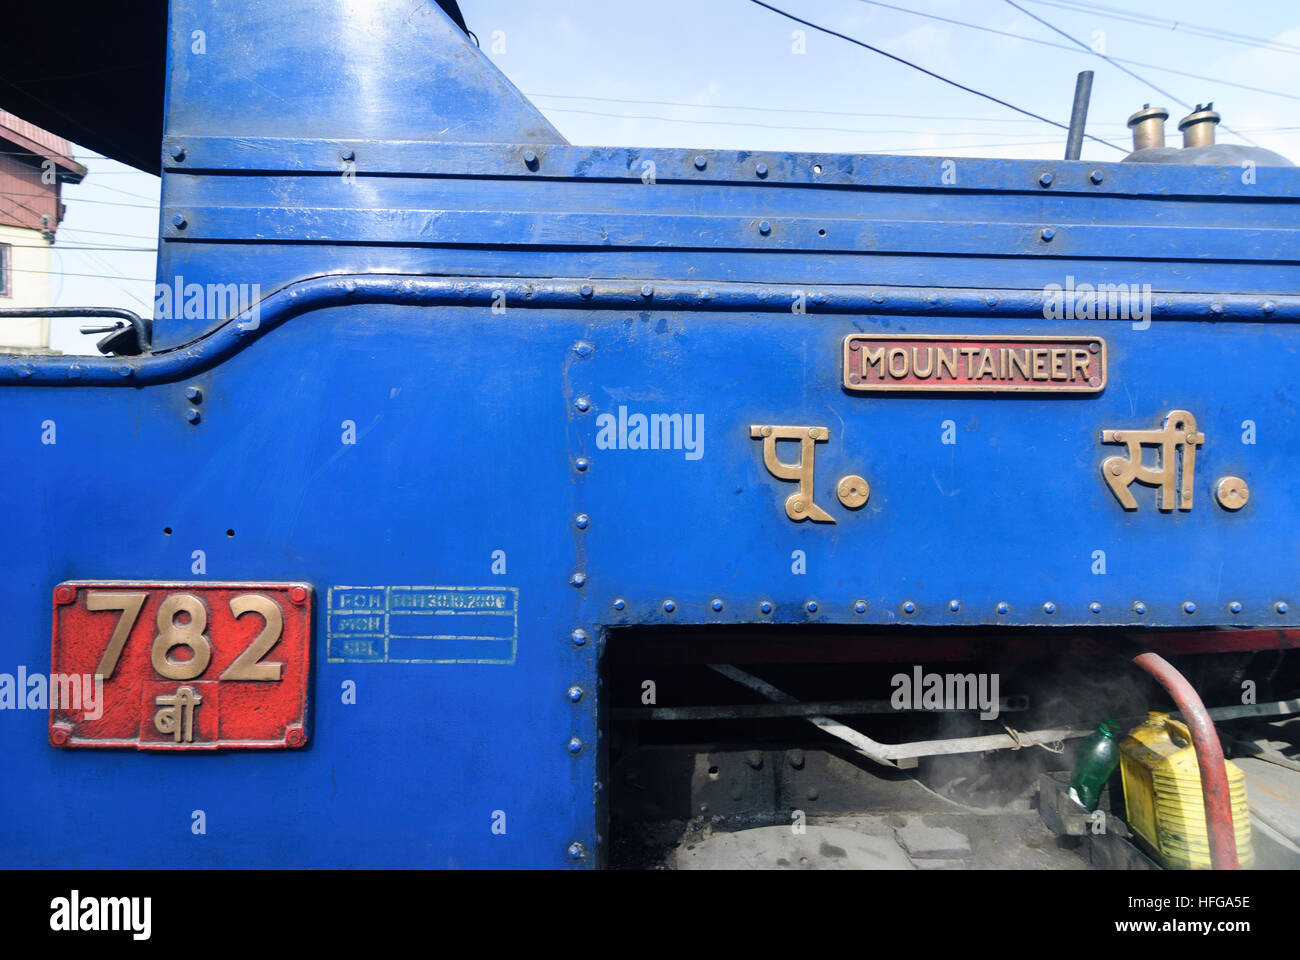 Darjeeling: Steam train of Darjeeling Himalayan railway at the station of Darjeeling, West Bengal, Westbengalen, - Stock Image